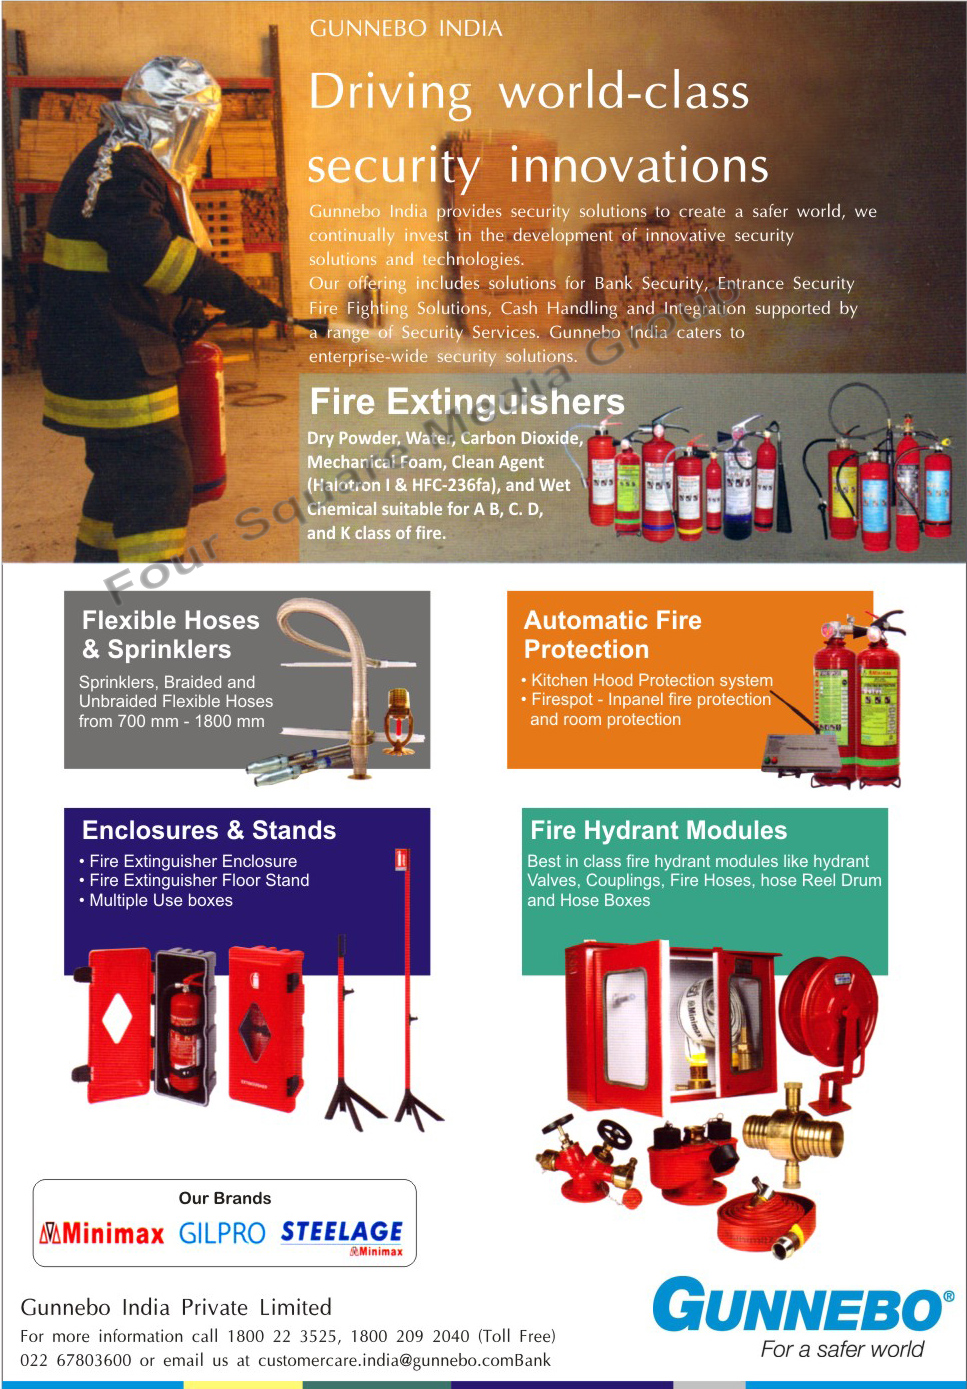 Fire Extinguishers, Flexible Hoses, Sprinklers, Fire Protection Systems, Kitchen Hood Protection Systems, Room Protection Systems, Fire Extinguisher Enclosures, Fire Extinguisher Floor Stands, Fire Hydrant Modules, Hydrant Valves, Couplings, Fire Hoses, Hose Reel Drums, Hose Boxes